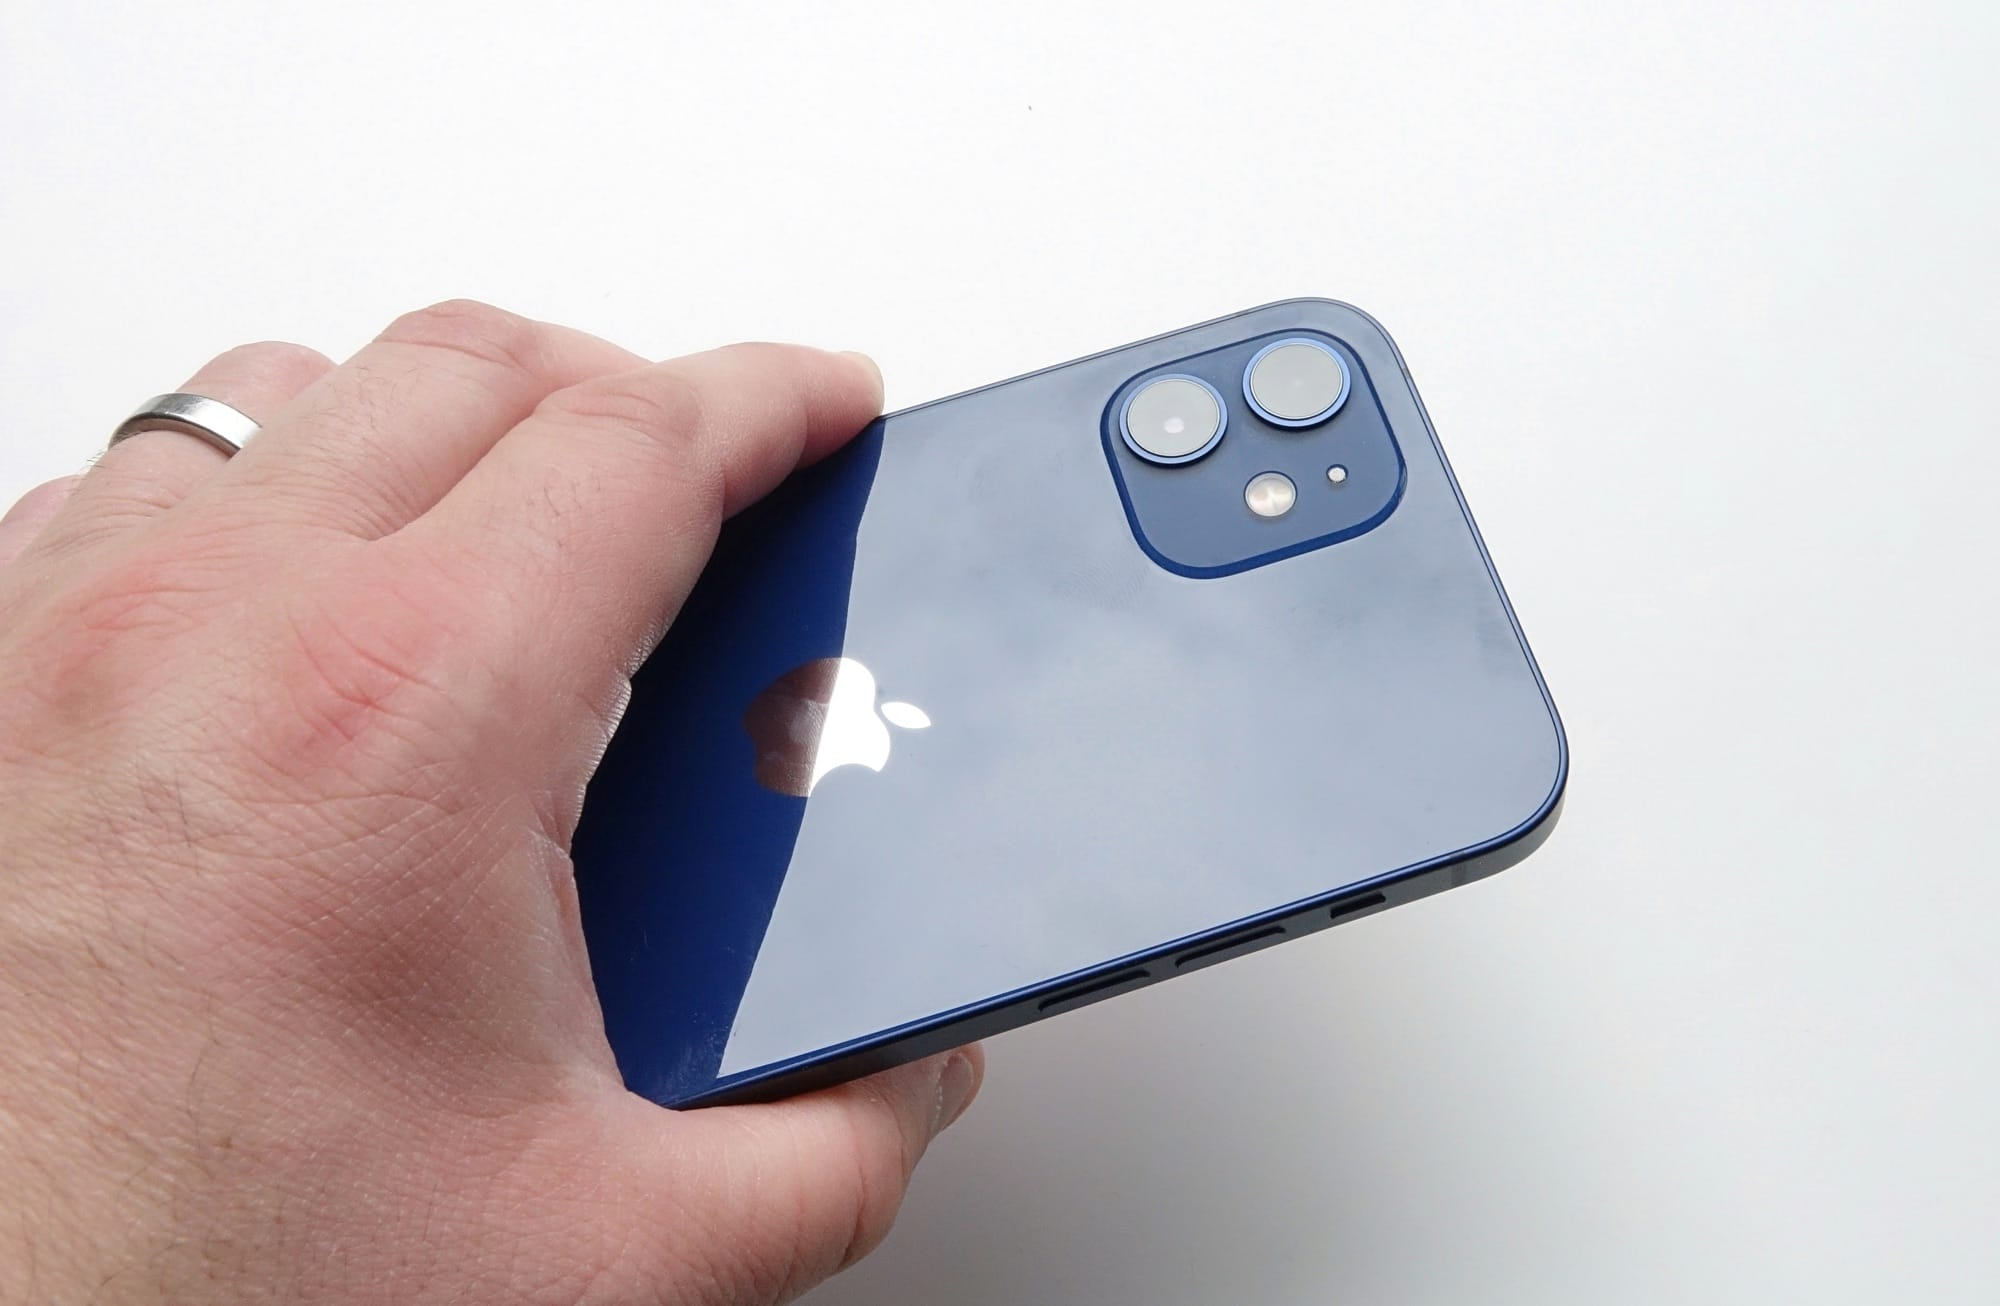 Holding the iPhone 12